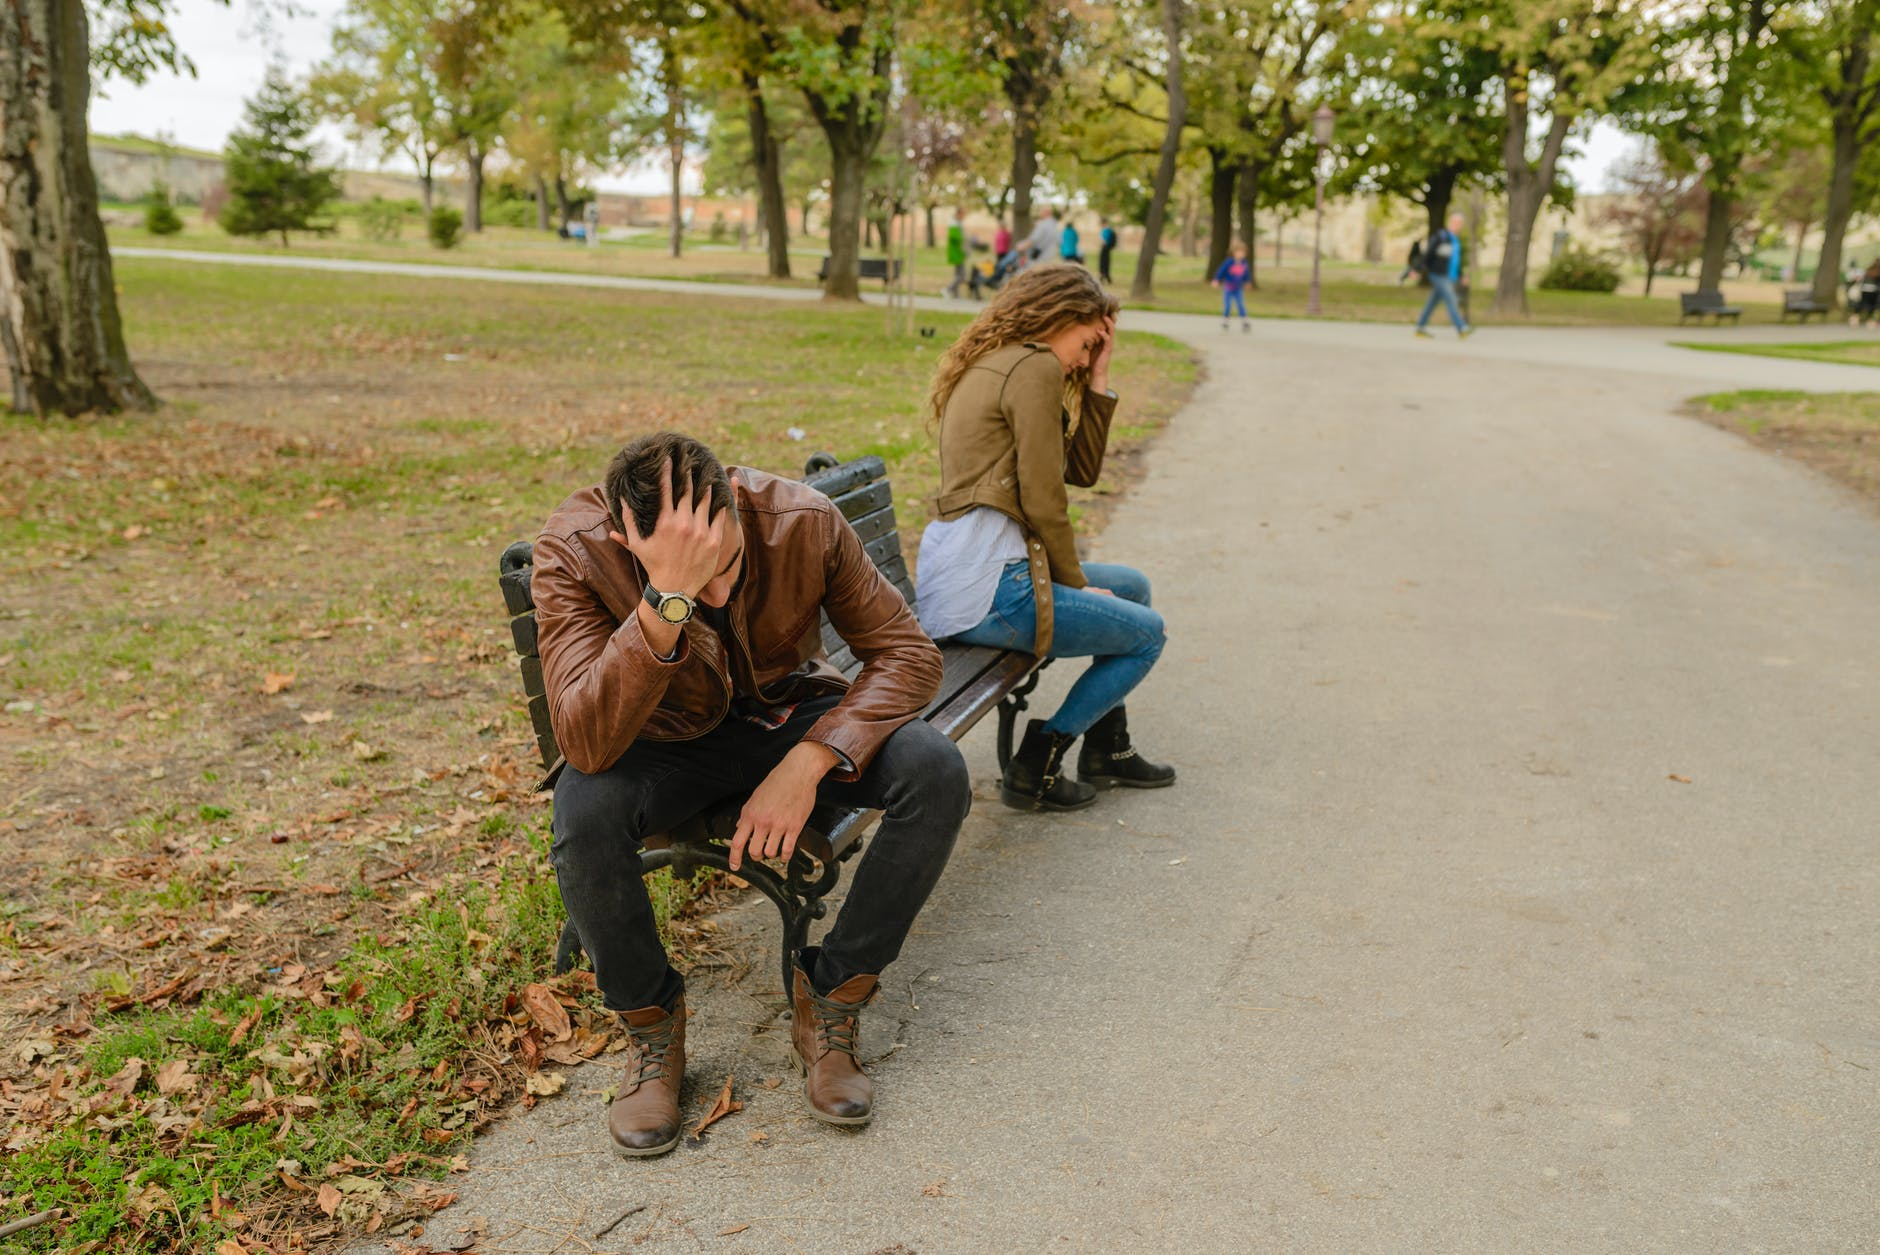 Man and woman sitting apart from each other on park bench looking frustrated